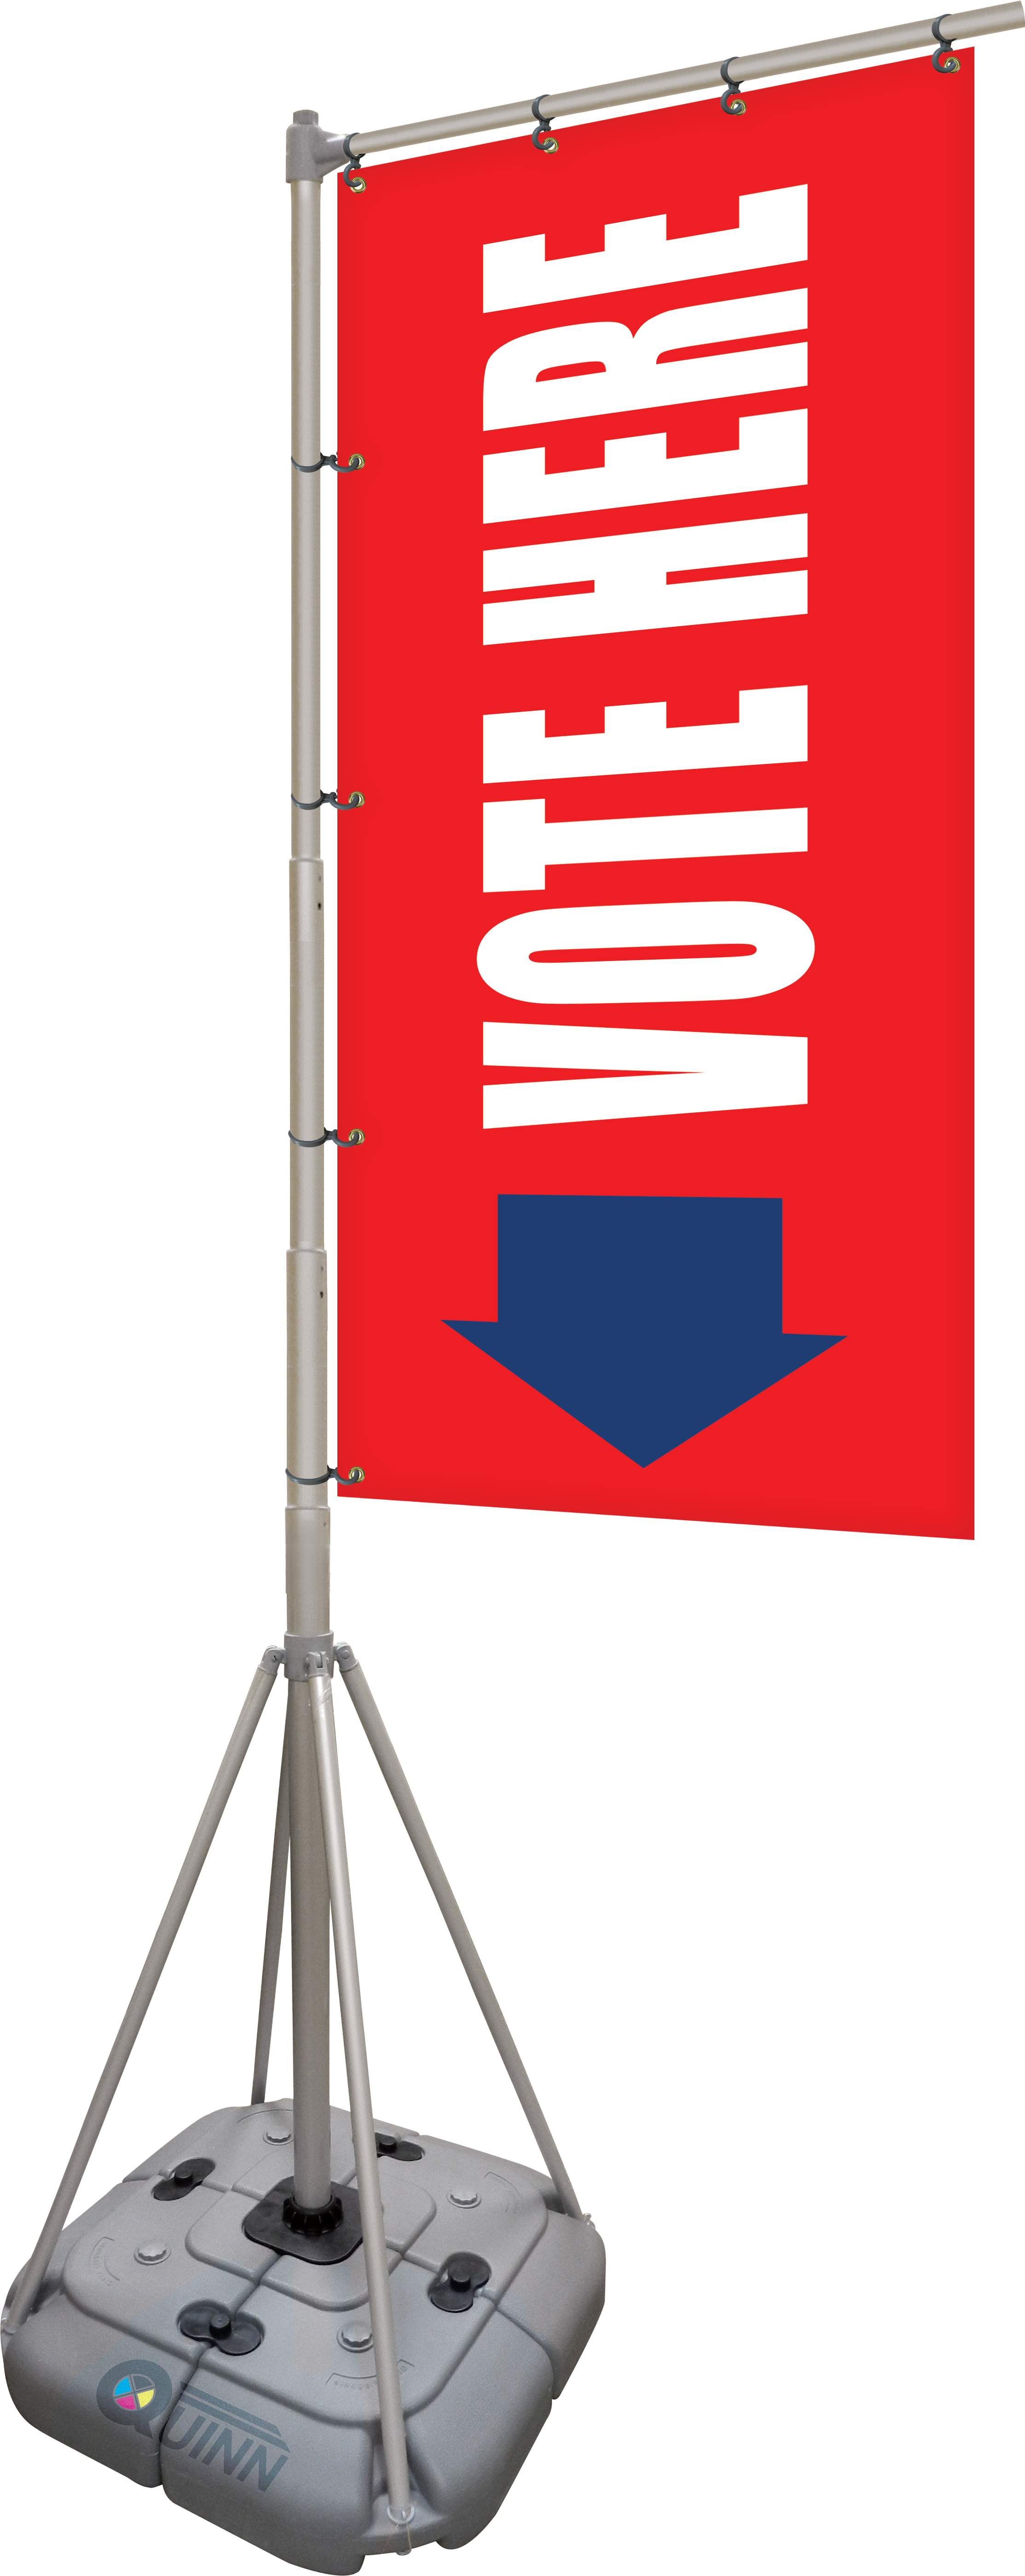 Giant Flag Pole Banners Give Your Next Political Event Or Promotion A Big Impact Pole Banners Political Events Politics